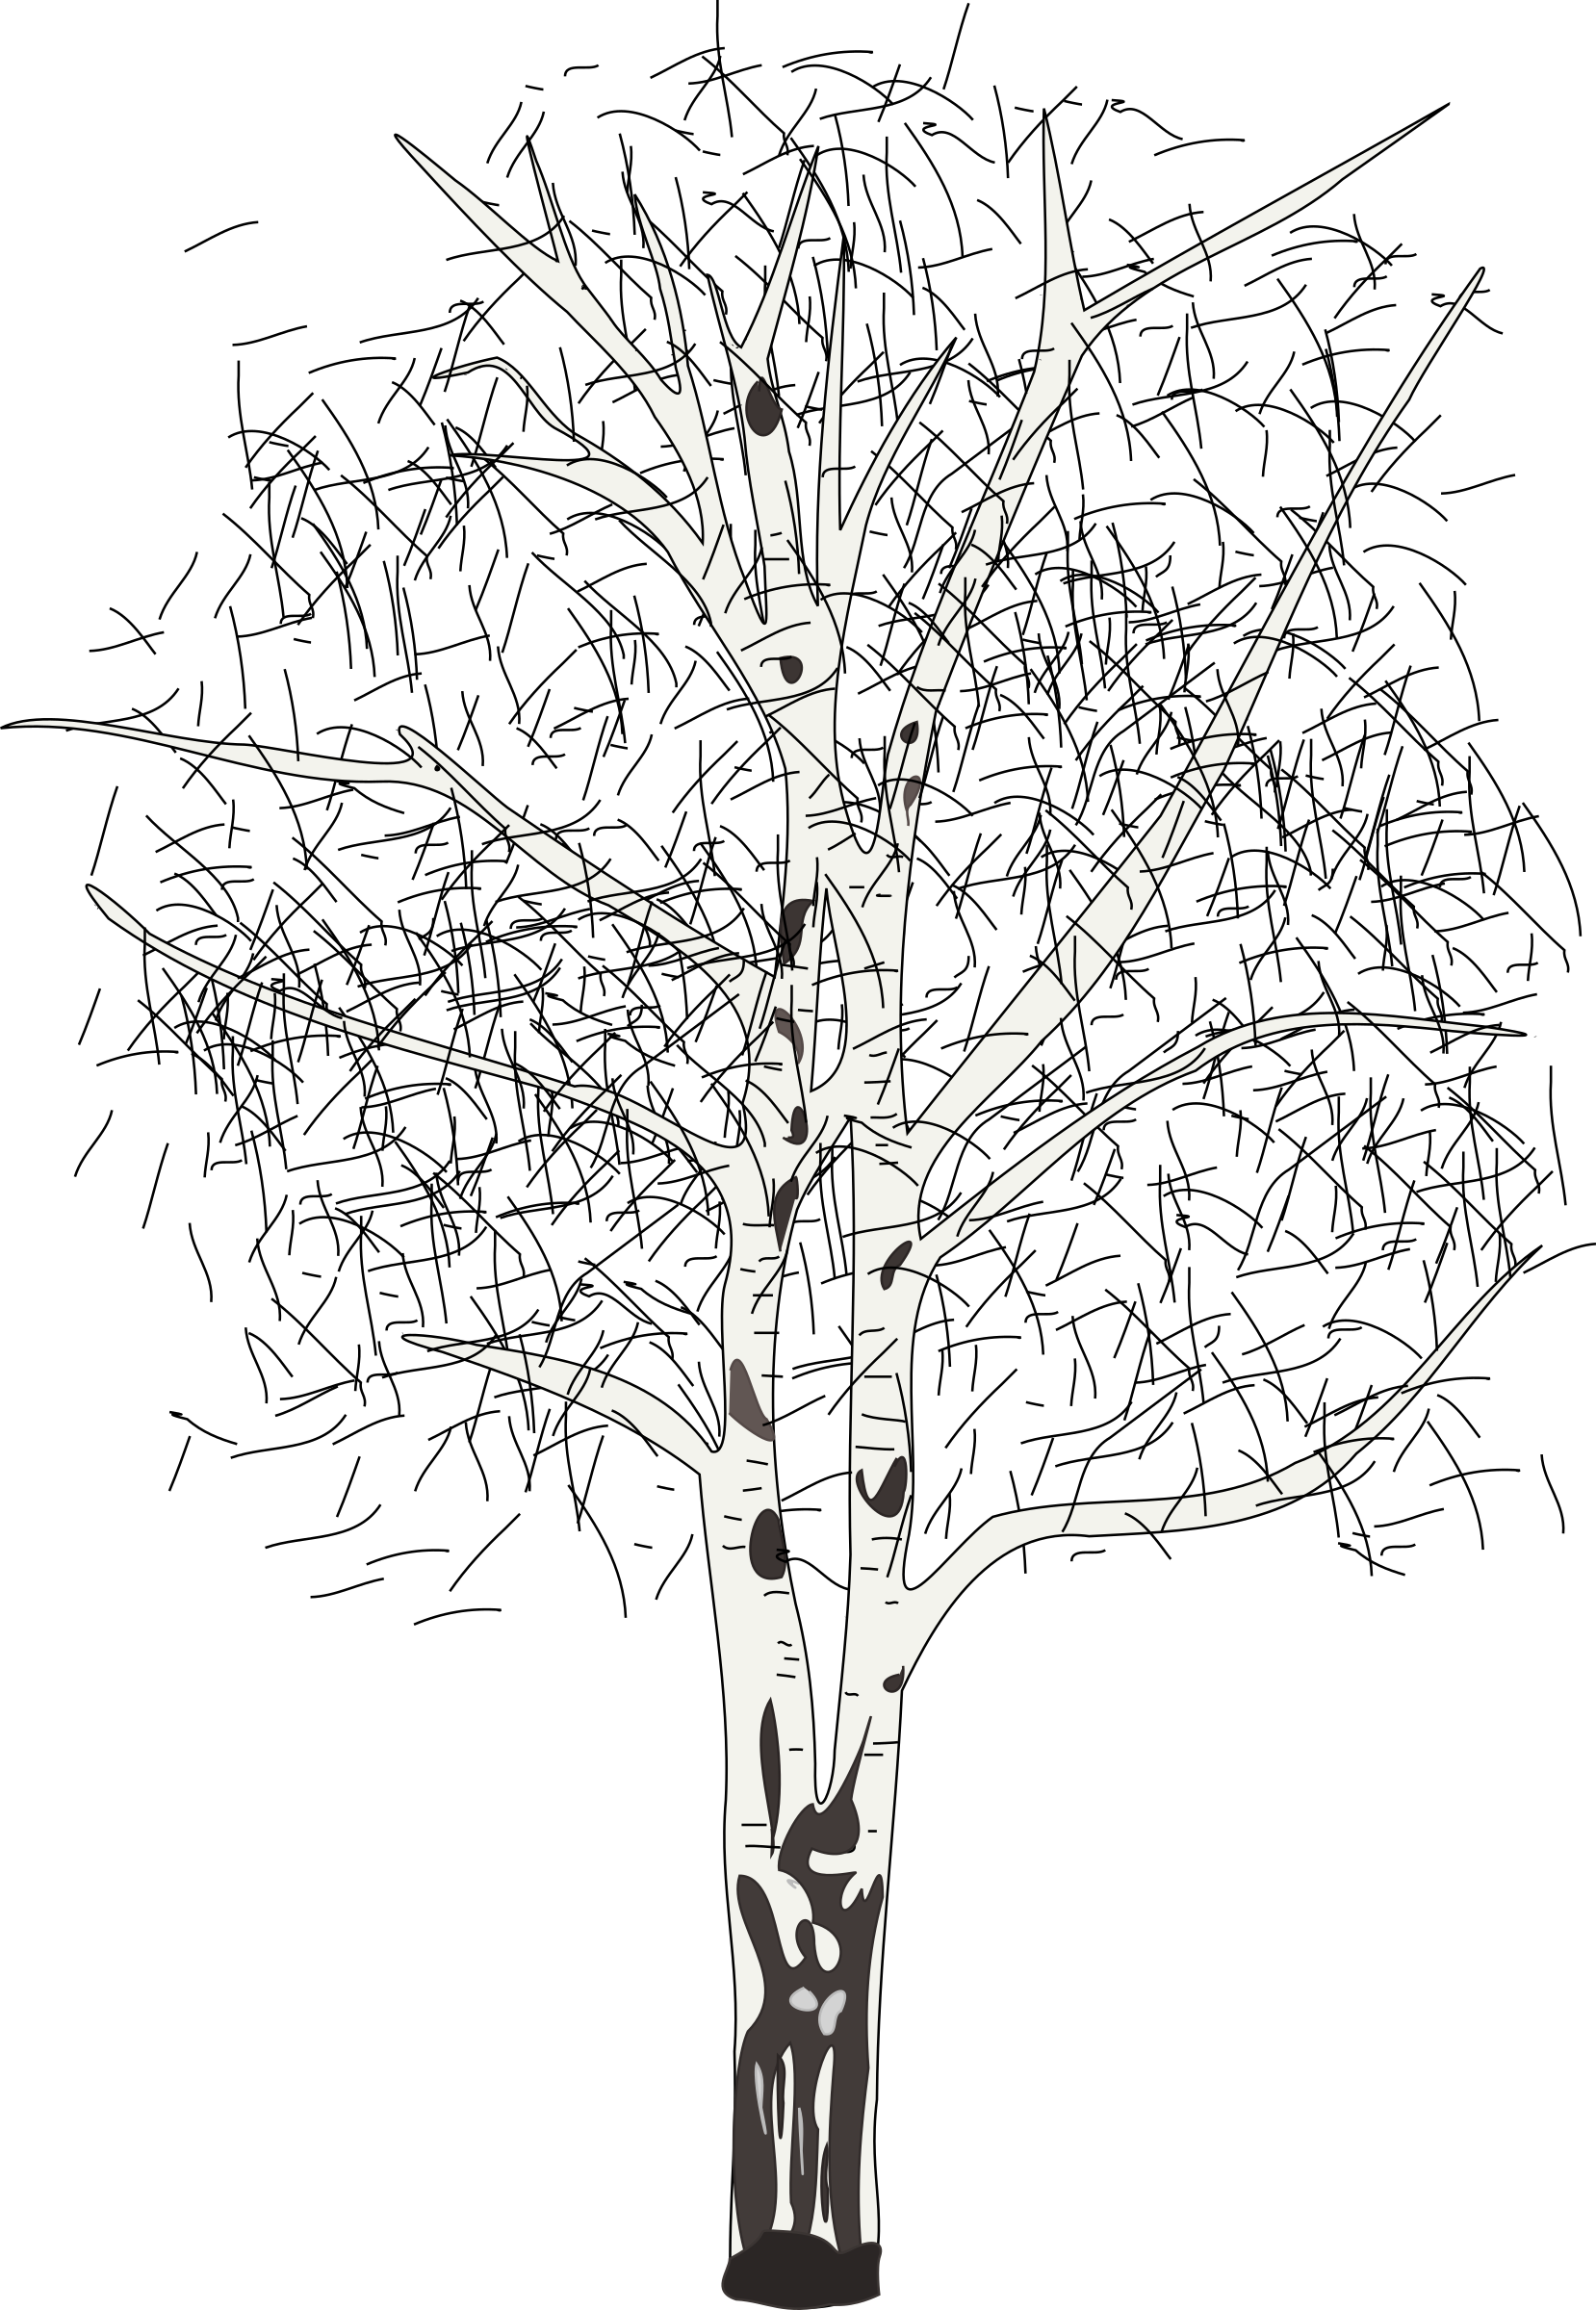 Birch tree in winter silhouette png. Leafless icons free and